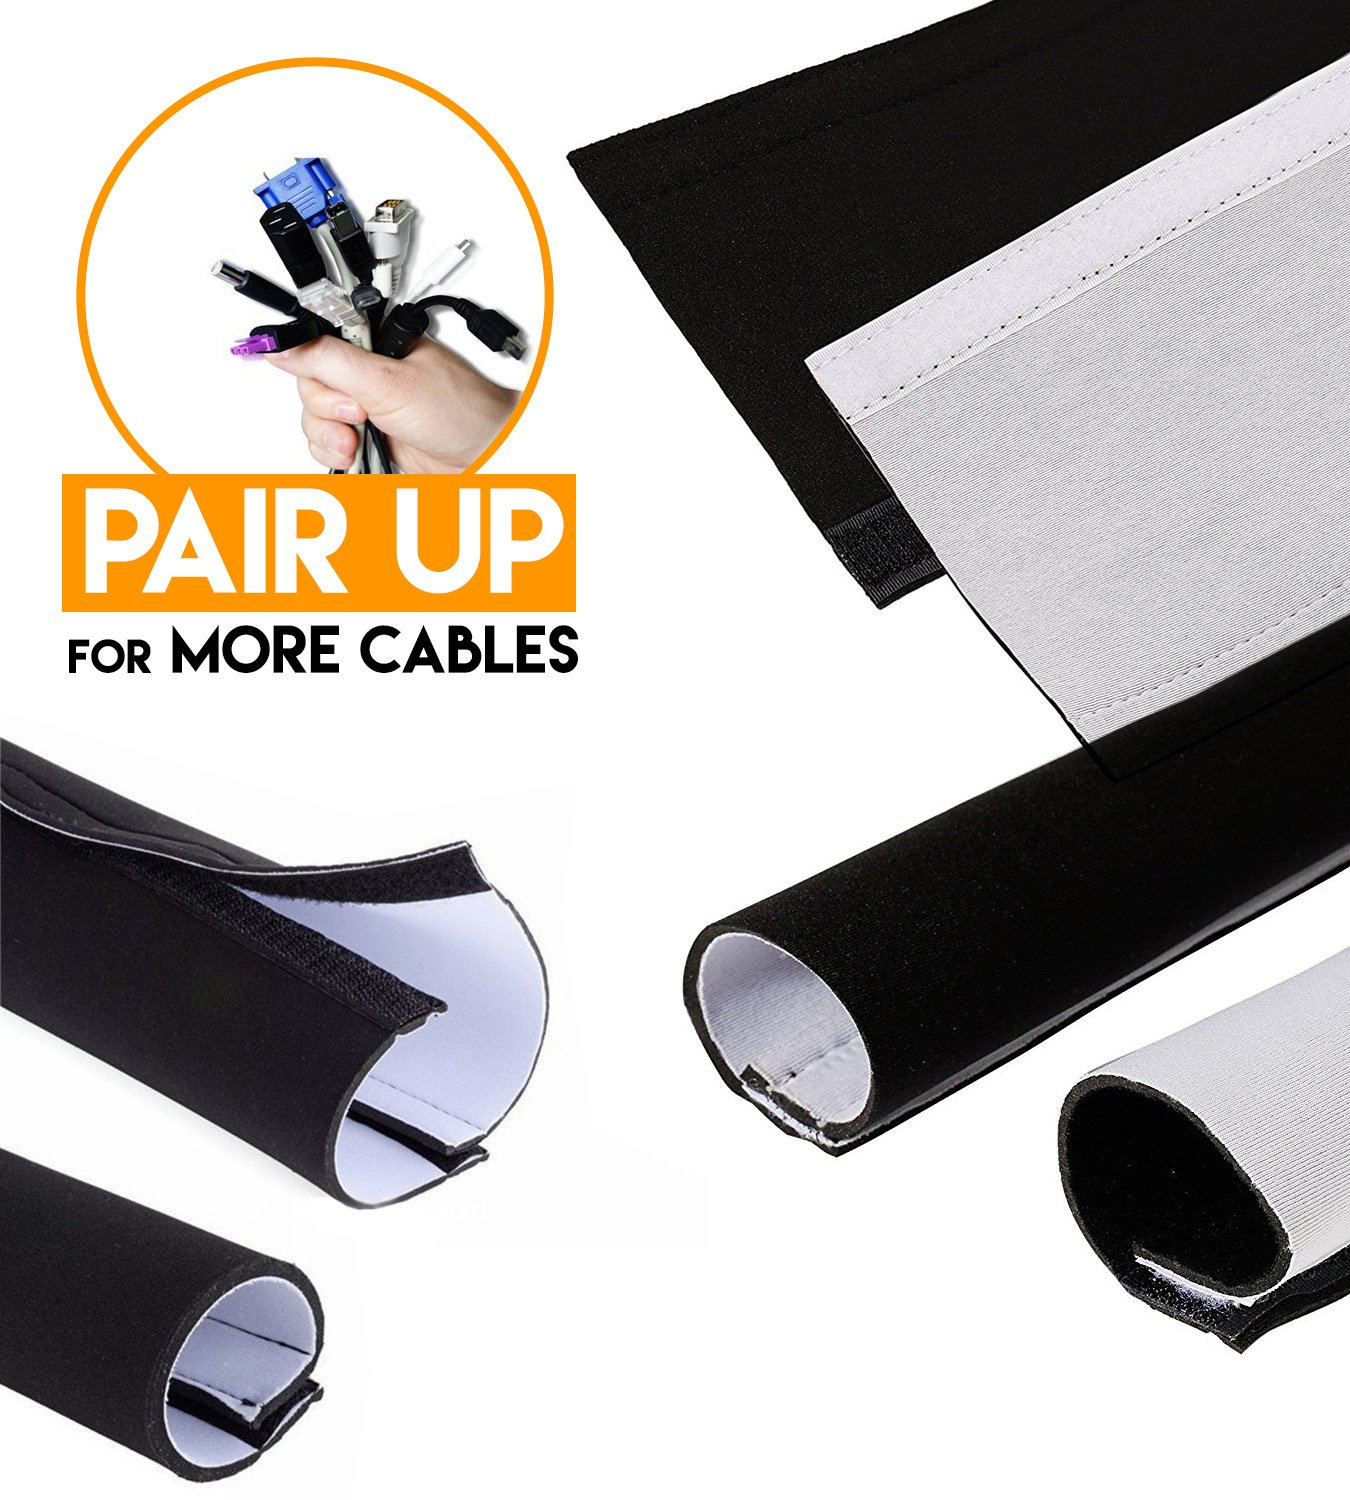 Adjustable Cable Organizer Sleeves (2 Pack x 35'') by Astorn. Reversible Black & White Neoprene Cord Organizer Sleeve Wraps. Cord Protector from Pets, Hiding Wires by Astorn (Image #4)